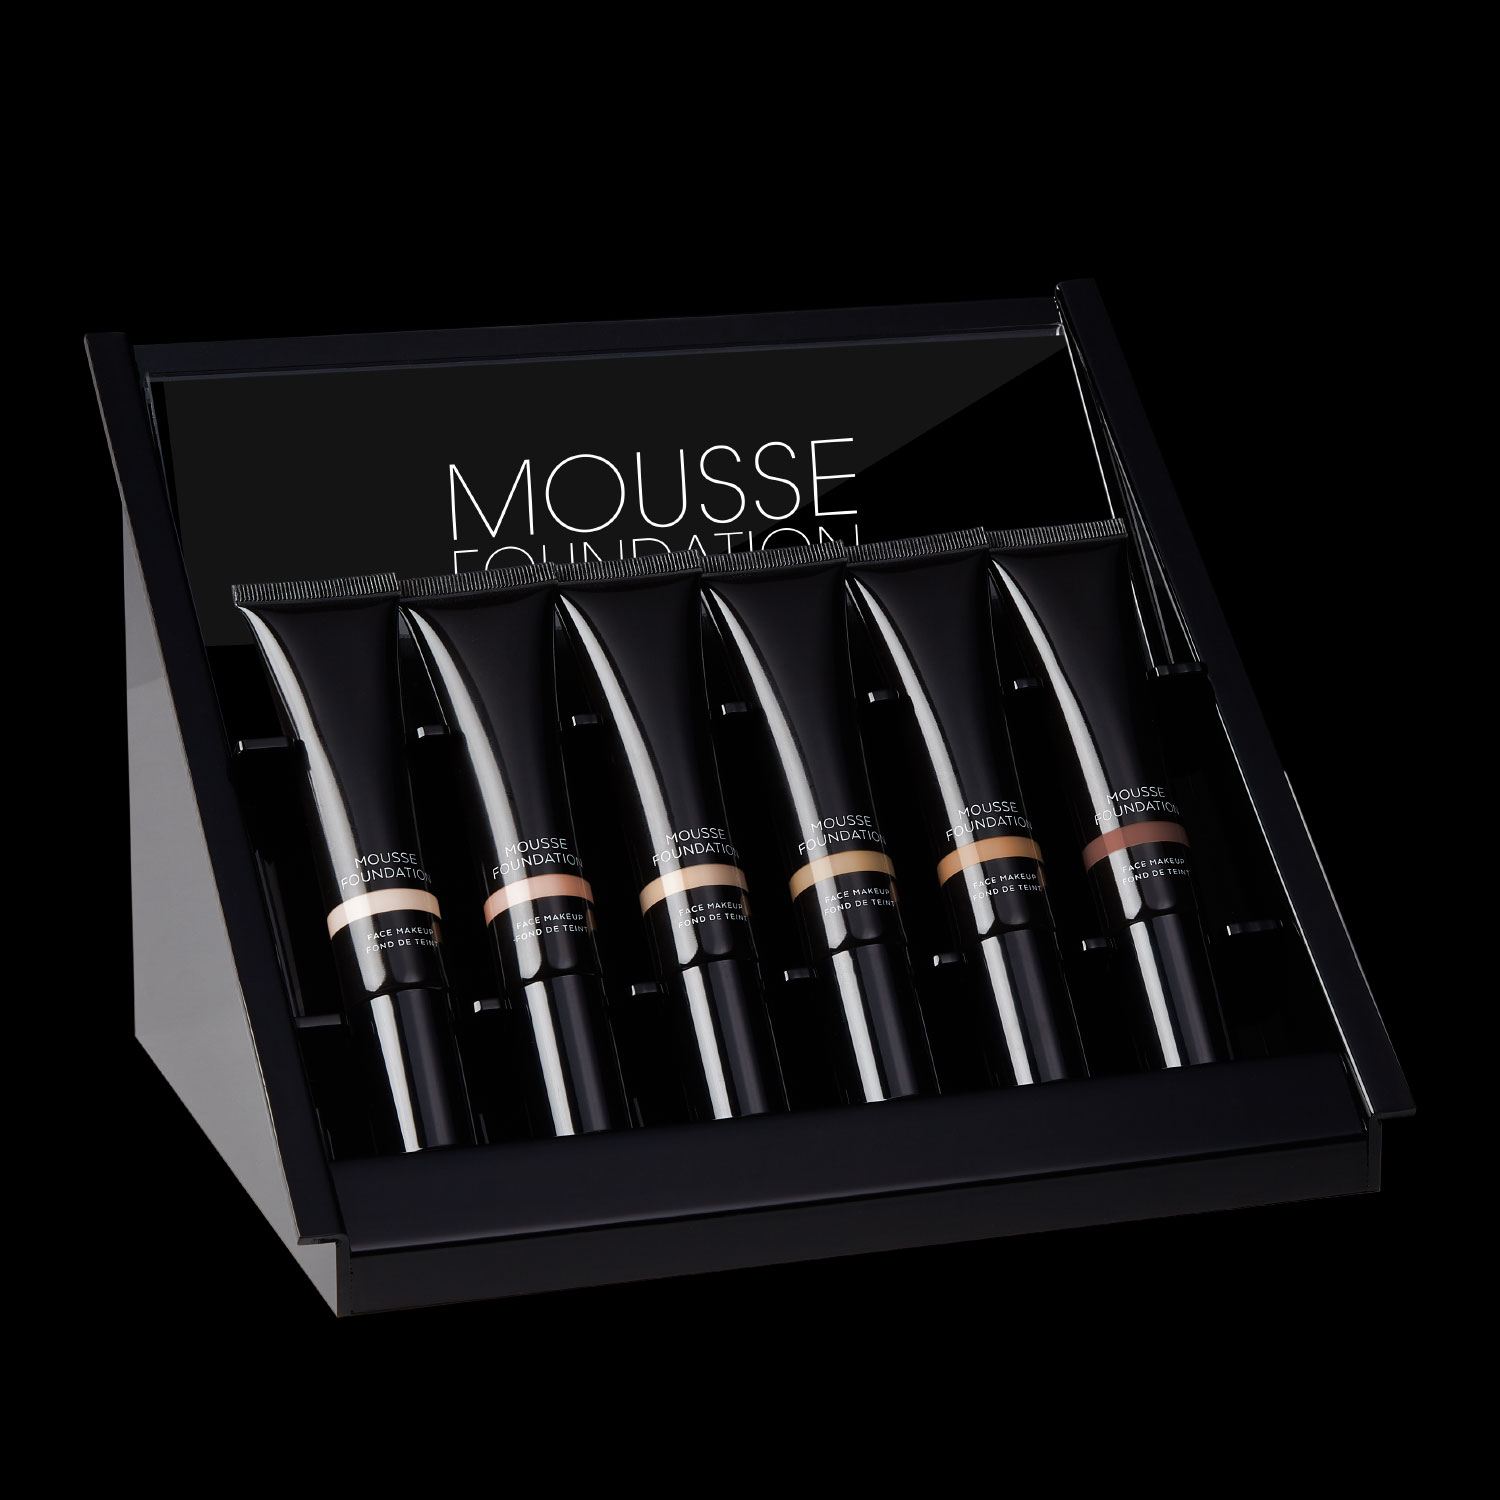 6pc mousse <BR>foundation insert